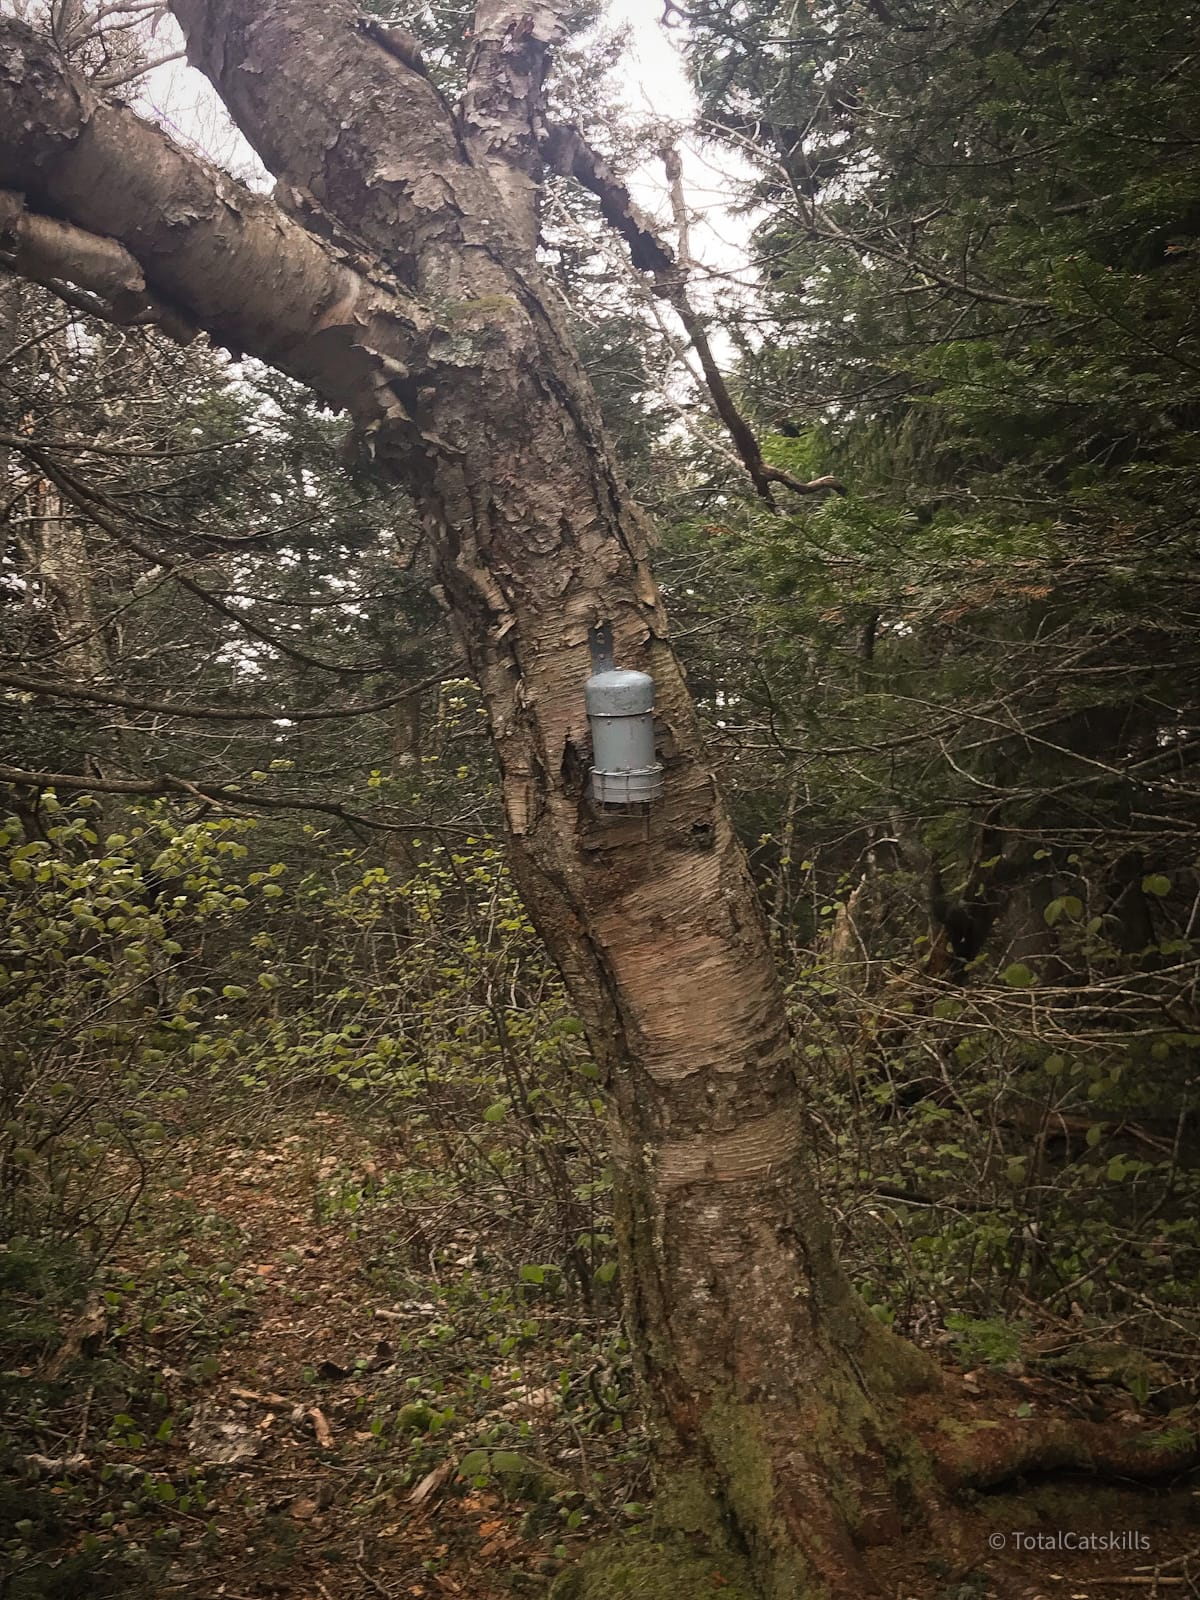 canister affixed to tree